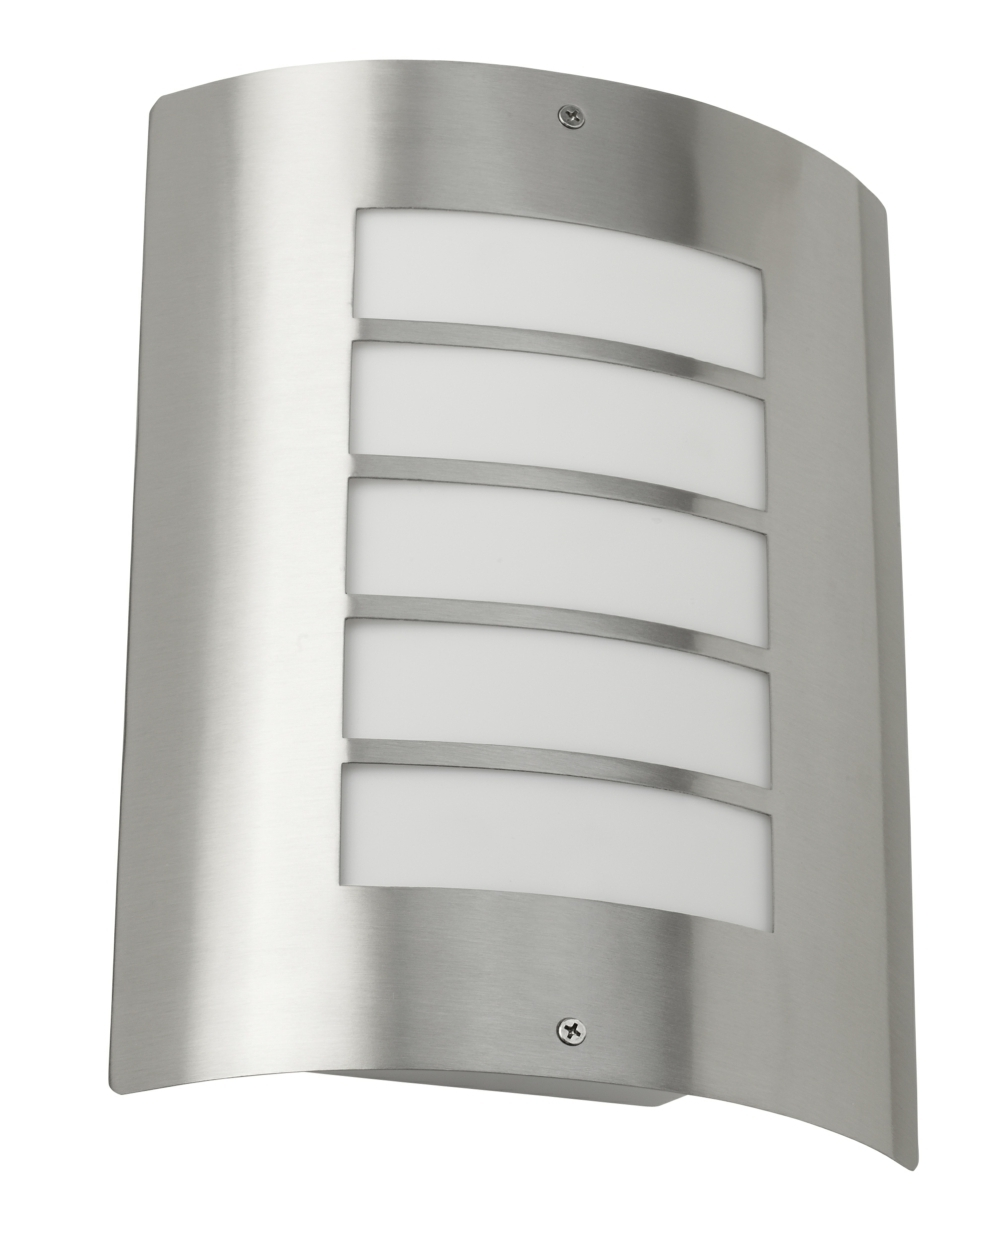 Most Recently Released Curved Outdoor Wall Mounted Lighting Pertaining To Outdoor Wall Mounted Lighting (View 6 of 20)